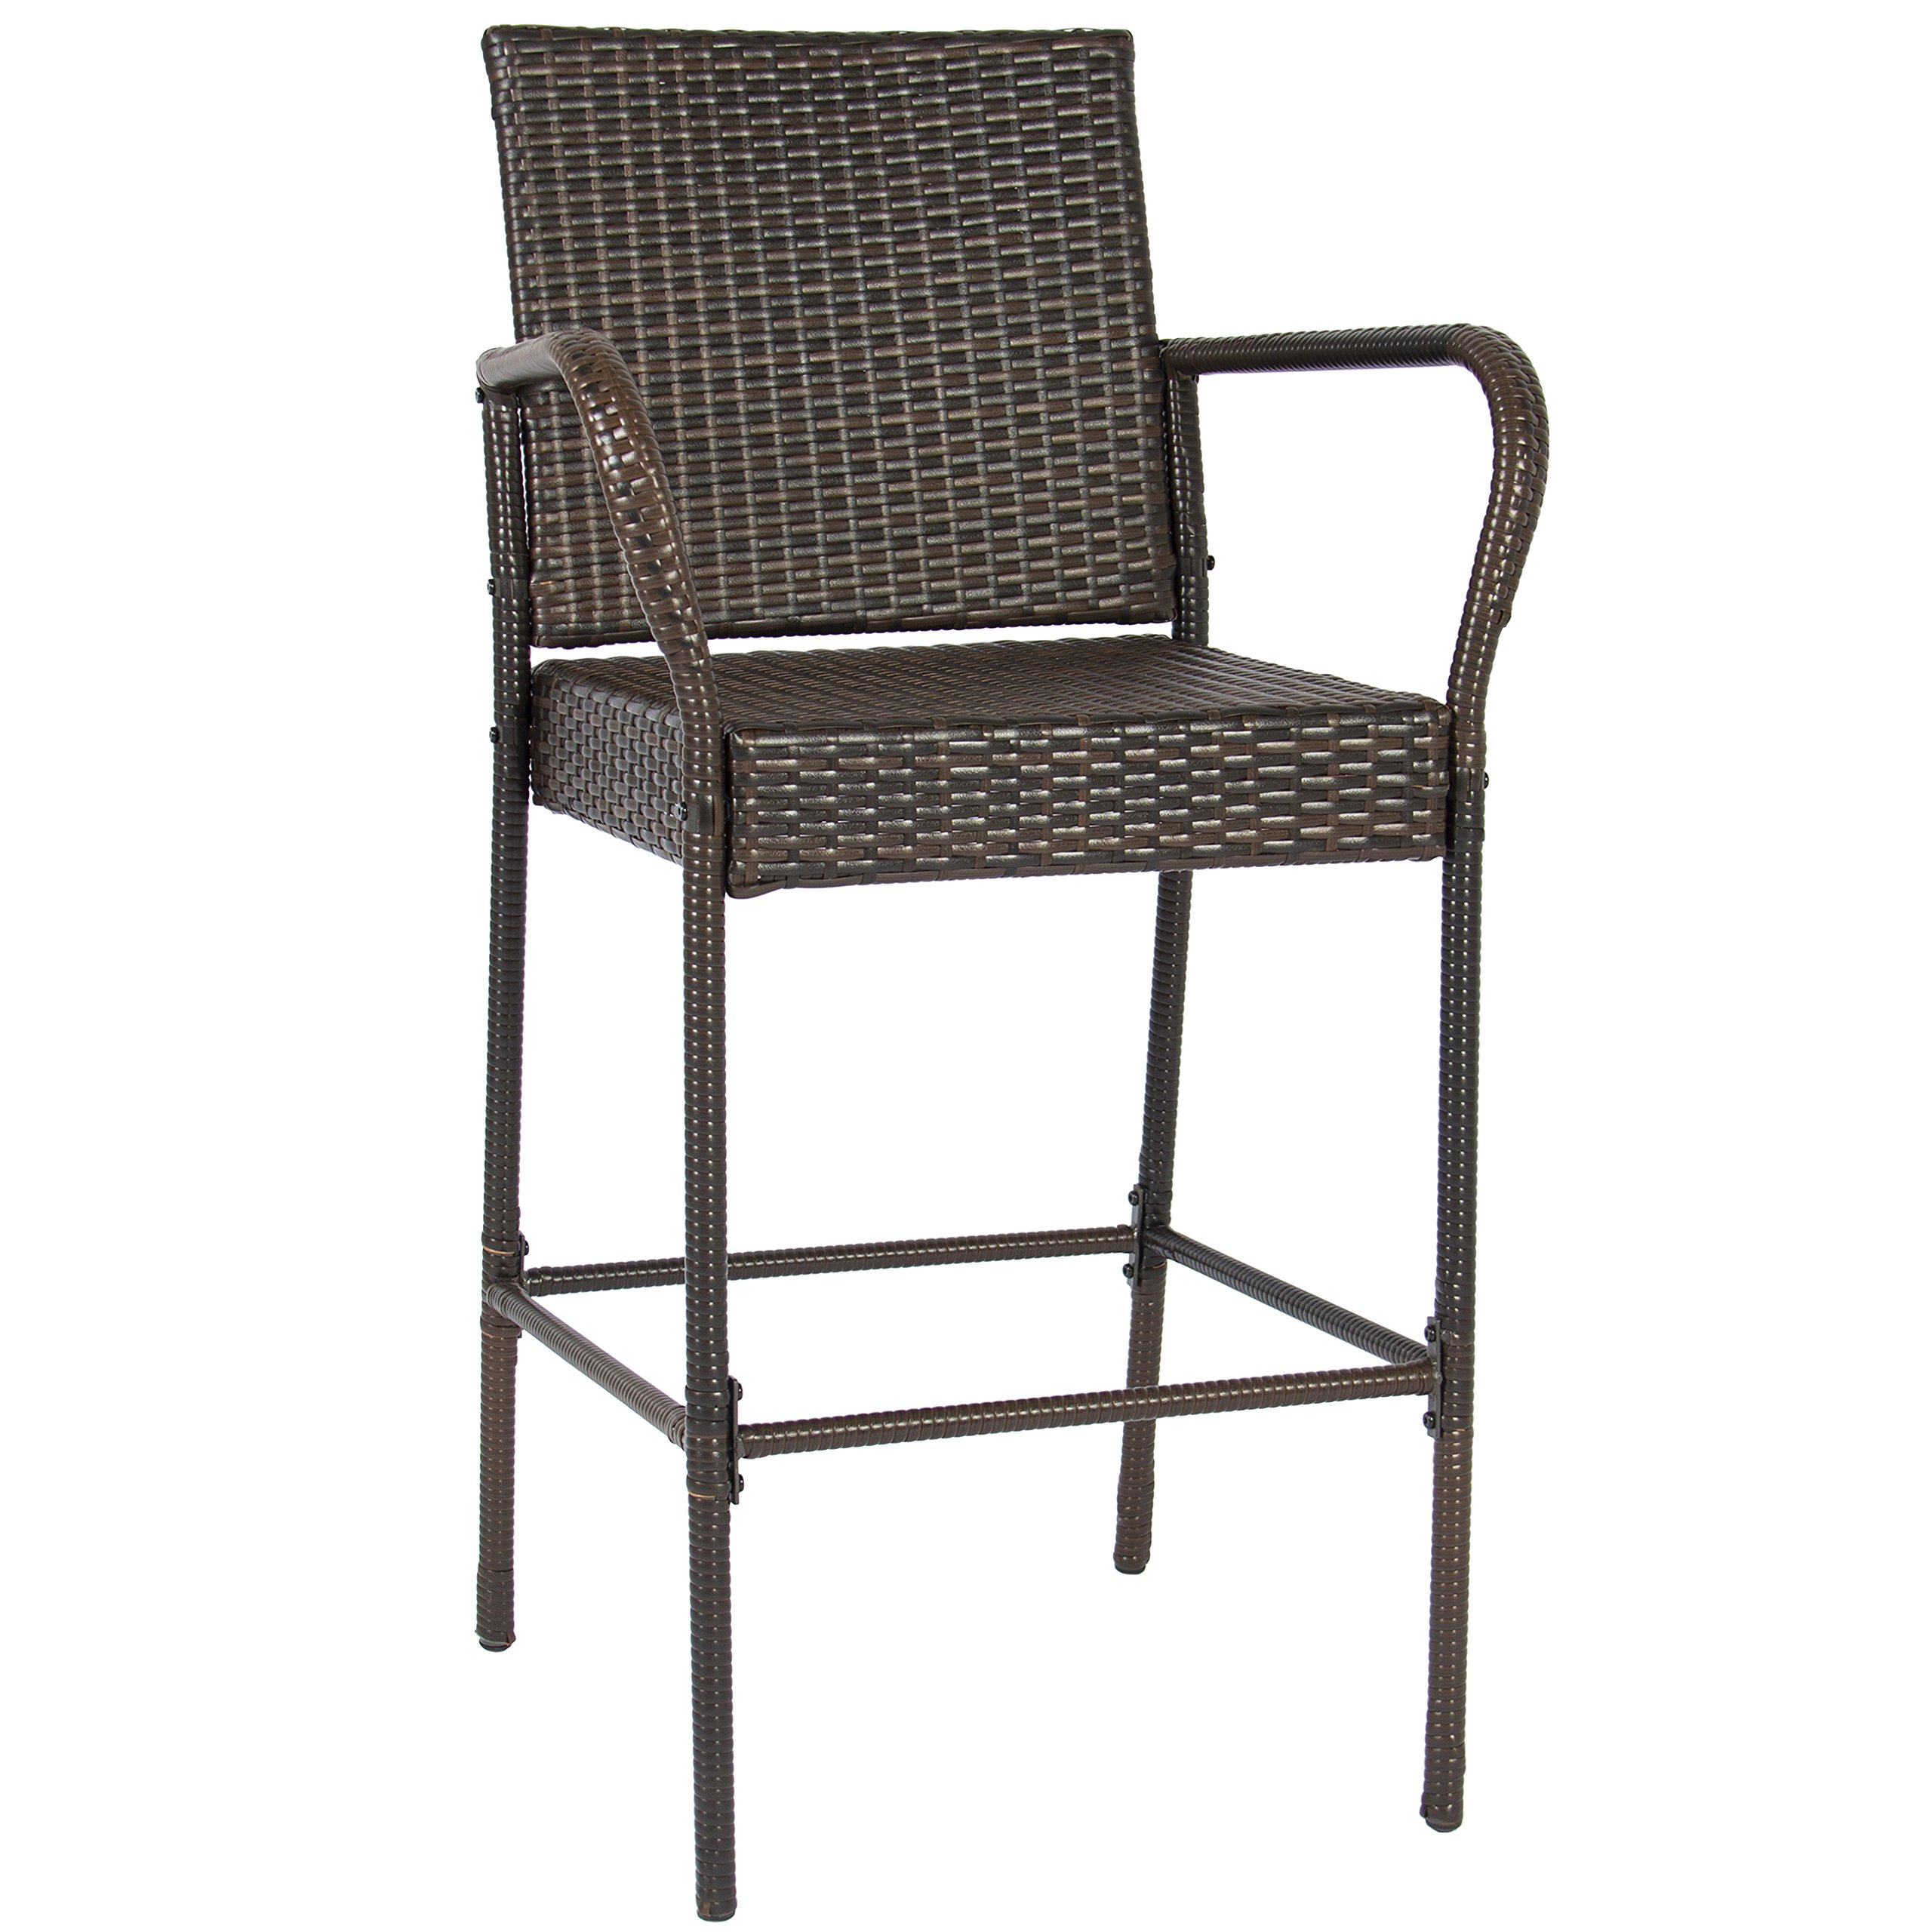 Best Choice Products Set of 2 Outdoor Brown Wicker Barstool Outdoor Patio Furniture Bar Stool by Best Choice Products (Image #3)